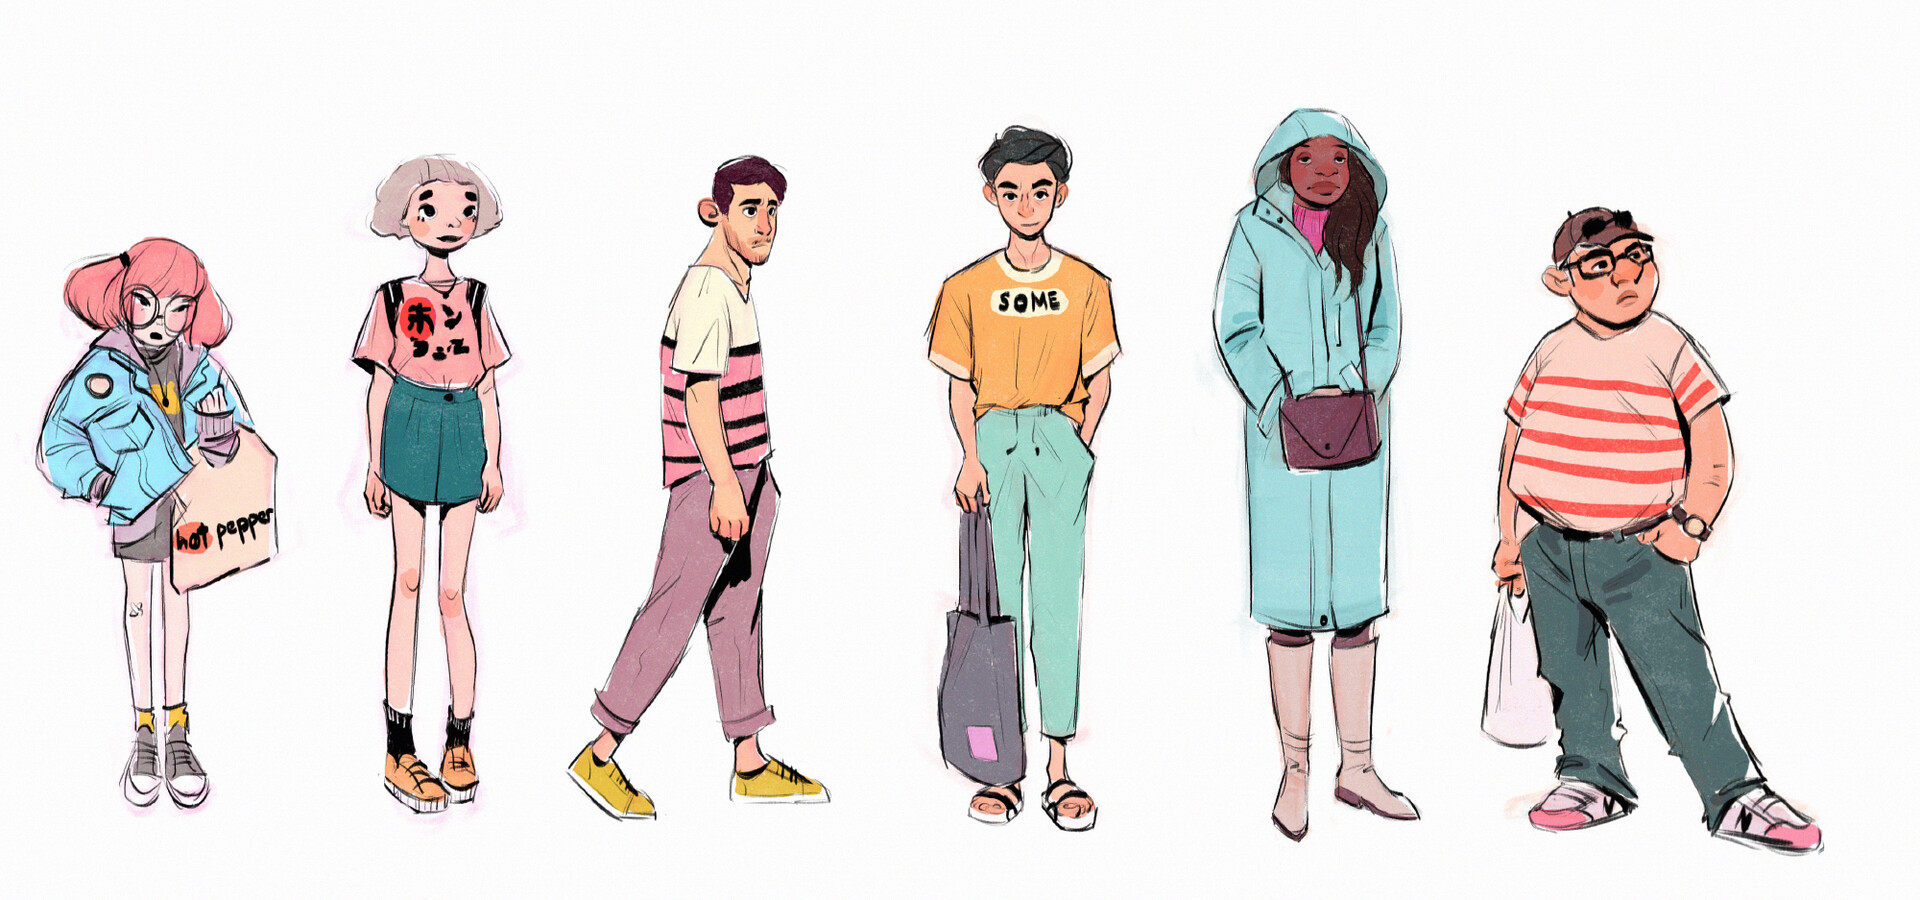 Tried to design a line up of some generic background characters.